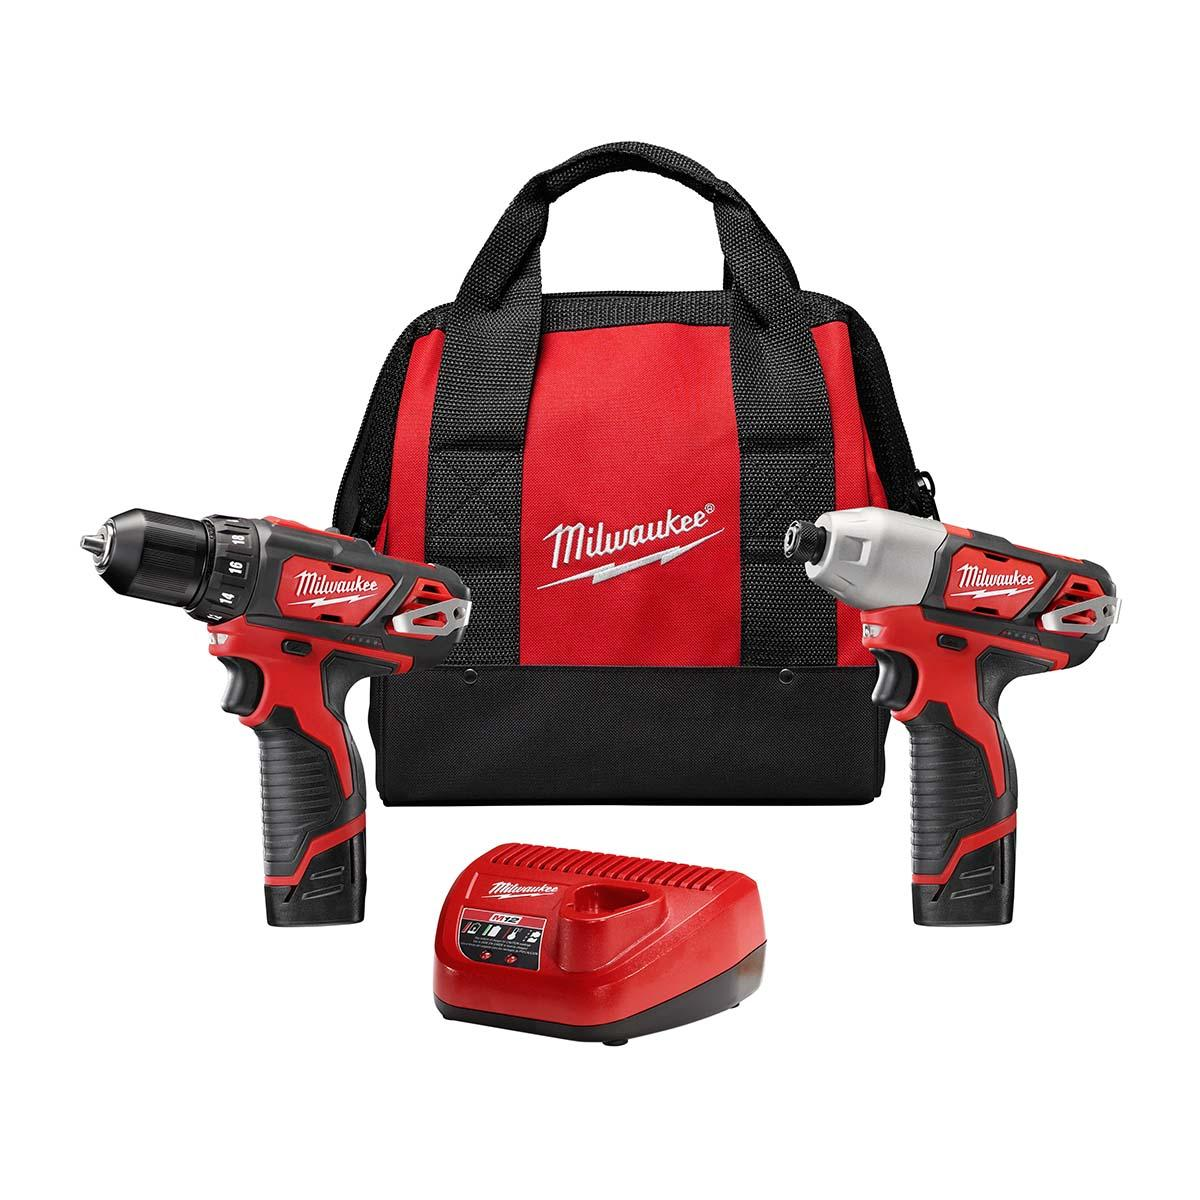 "M12â""¢ Cordless LITHIUM-ION 2-Tool Combo Kit"